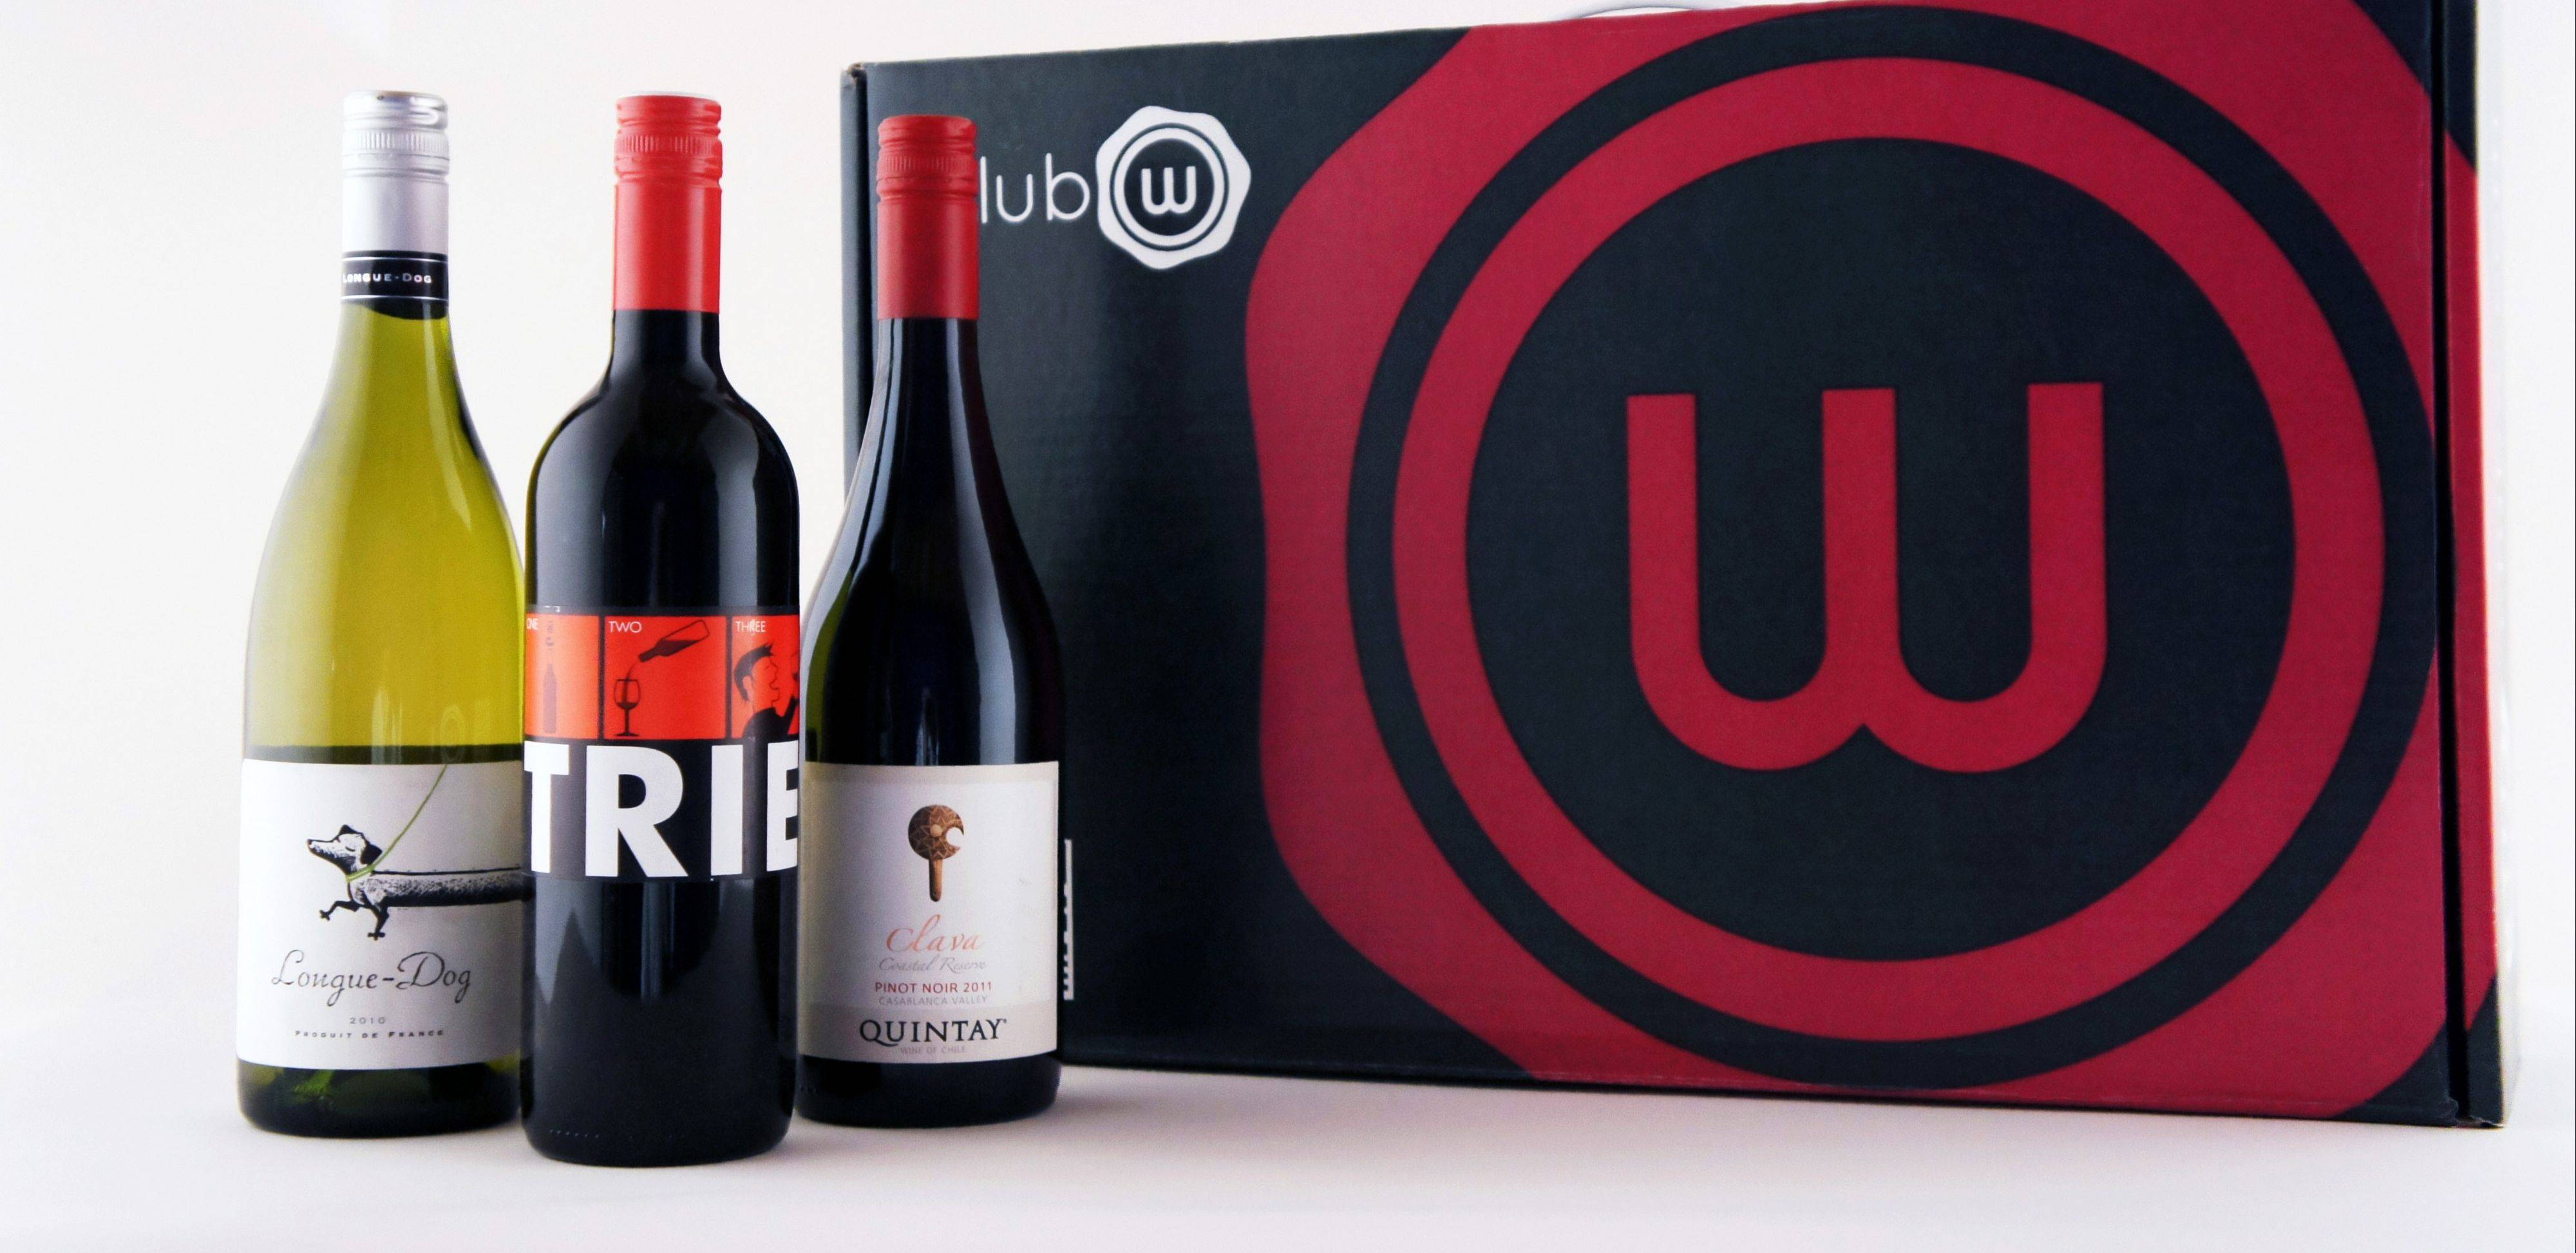 Club W offers three bottles of wine, as shown here, tailored to the buyer's taste monthly for $39. Club W is part of the growing number of online wine options.